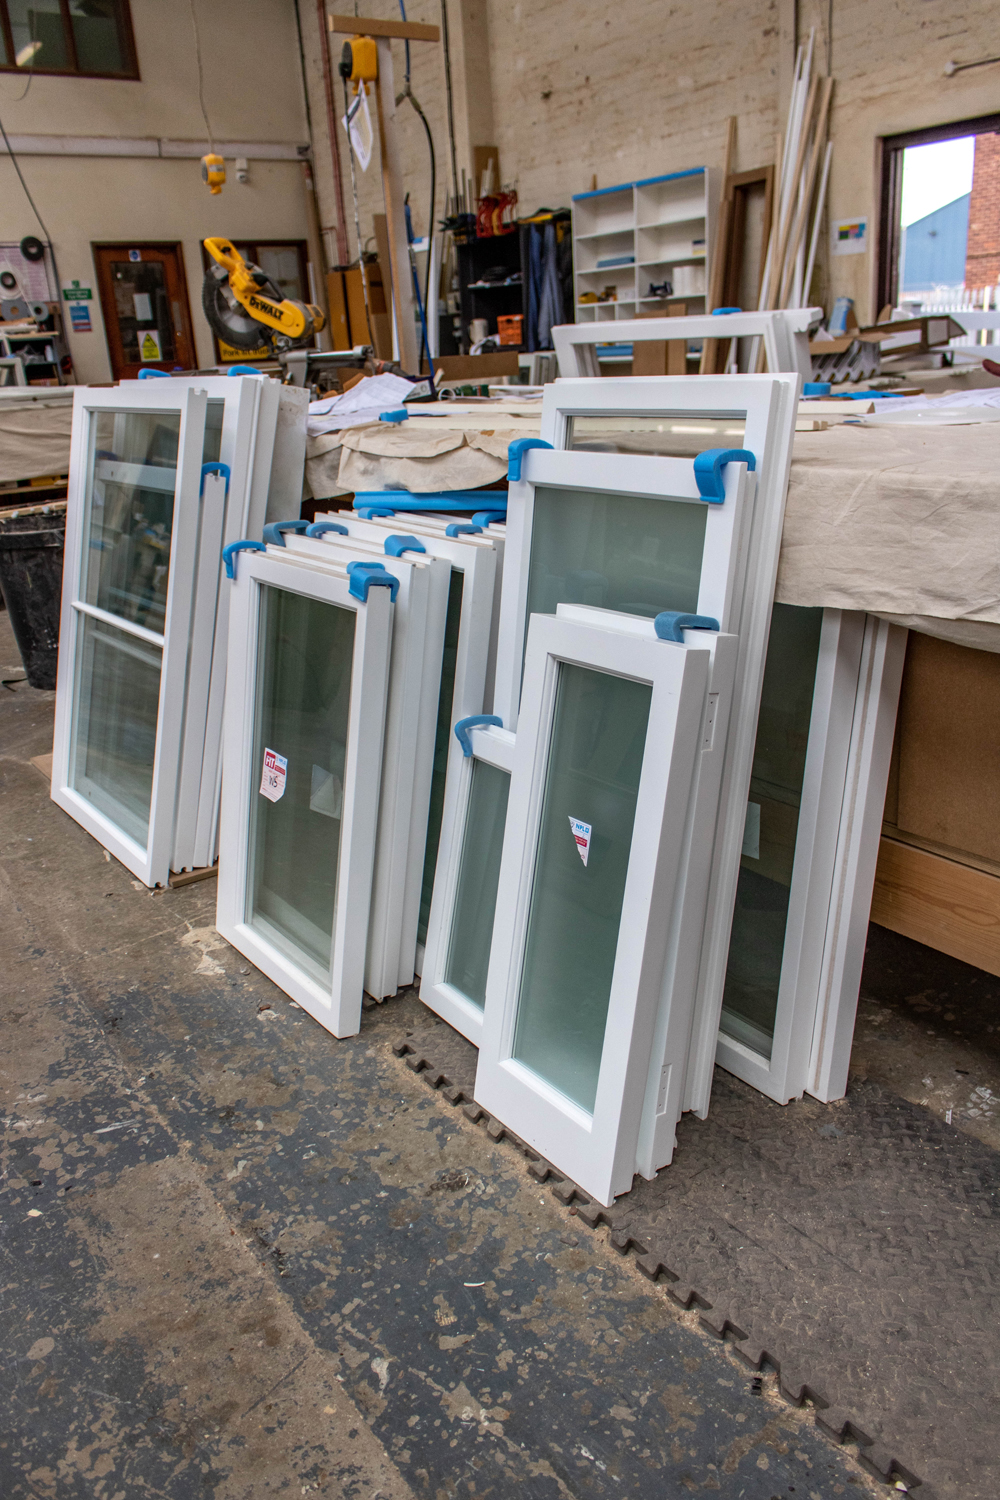 stacks of glass, pvc framed windows